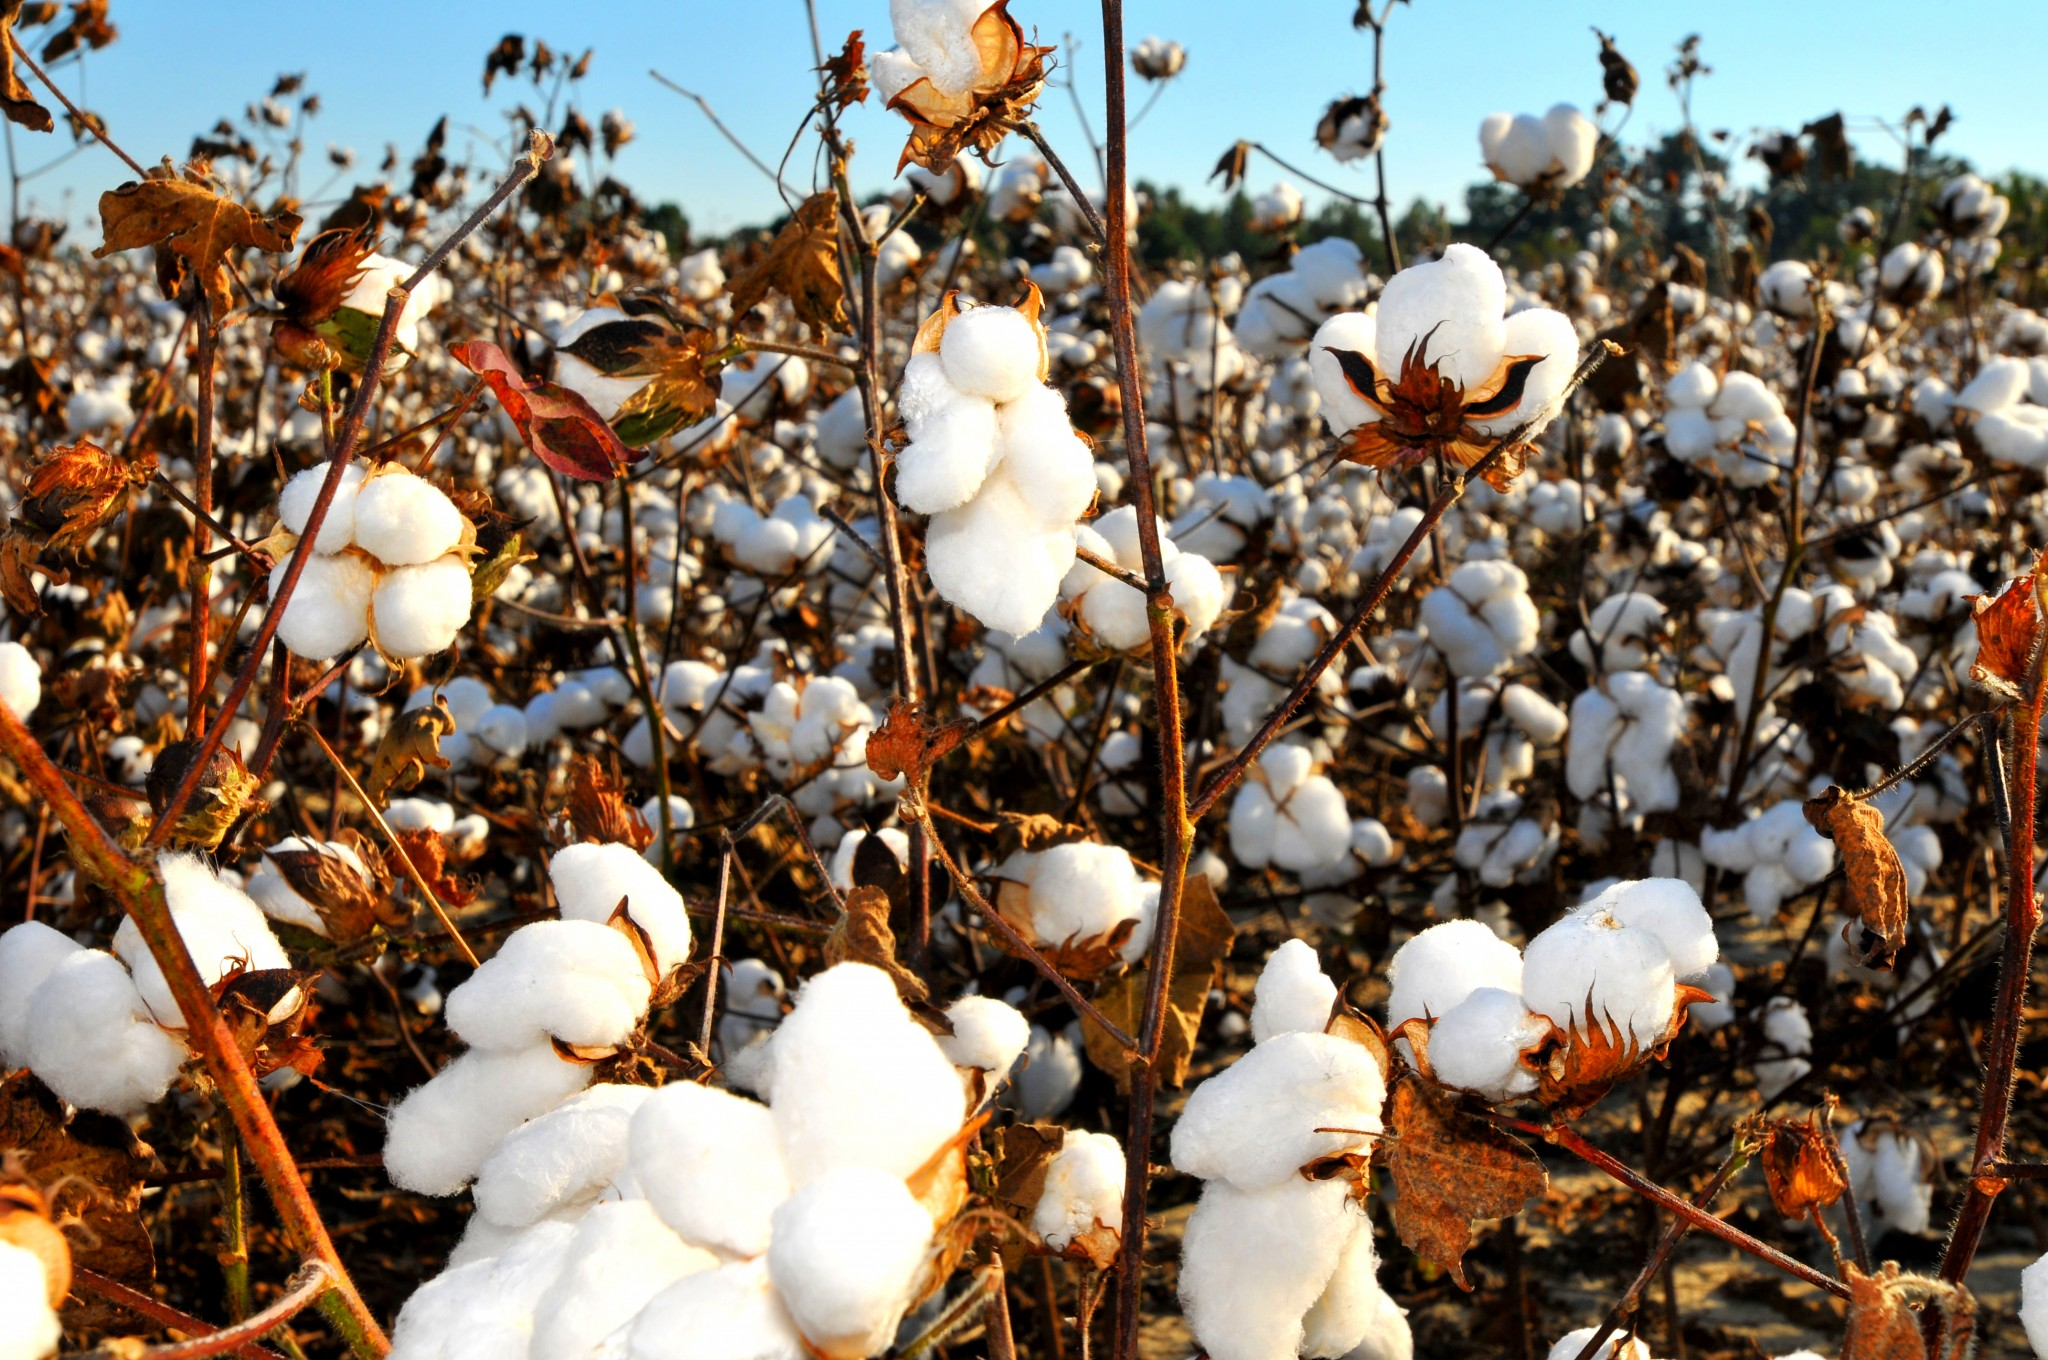 the impact of us cotton subsidies There have been assumptions made about subsidies – that they lead to a glut on   (1) the level of their financial dependency on the current us cotton farm  program:  and their impact on farmers of color in the us and the developing  world.